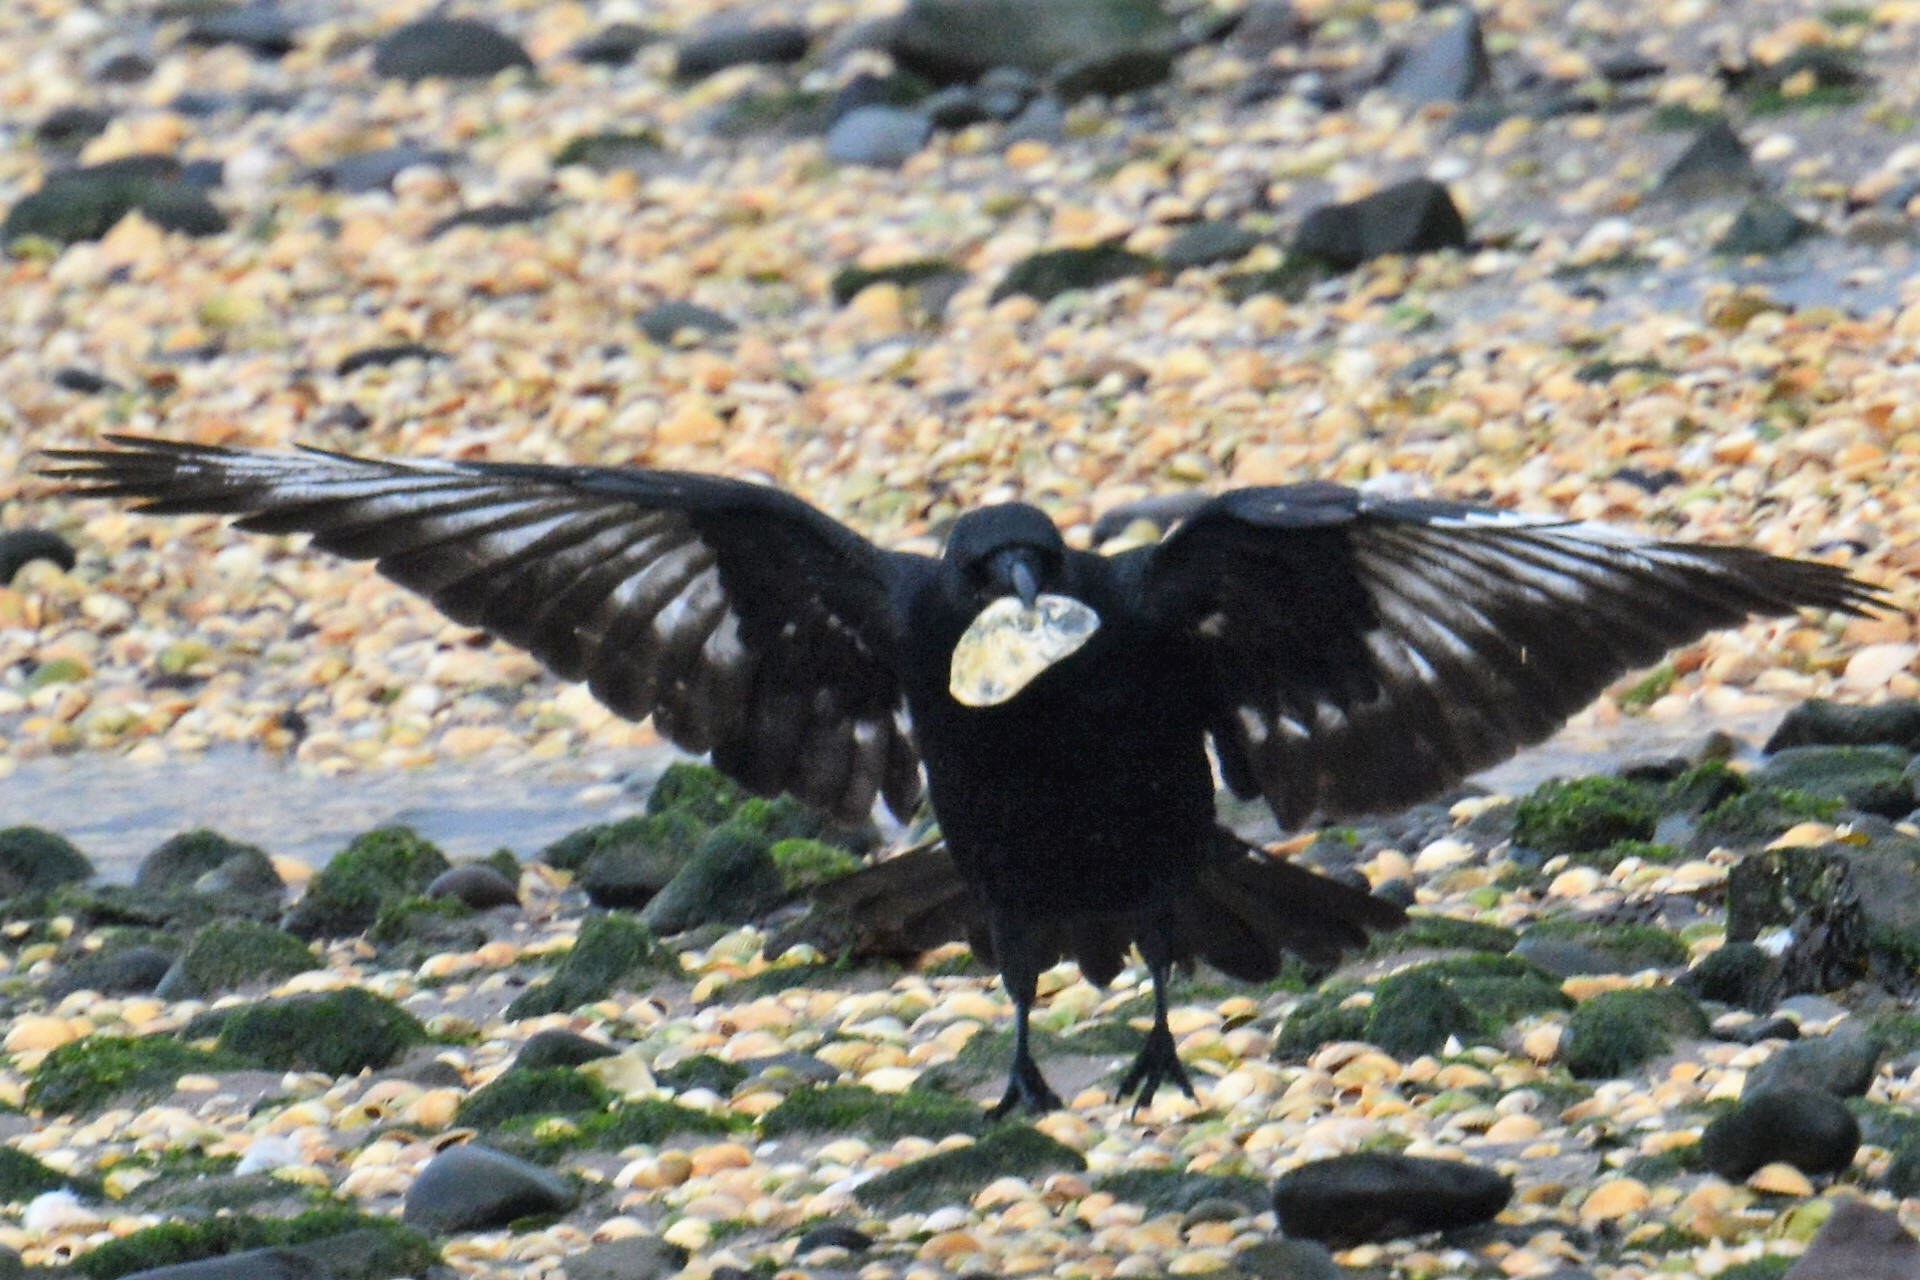 Carrion Crow with shell